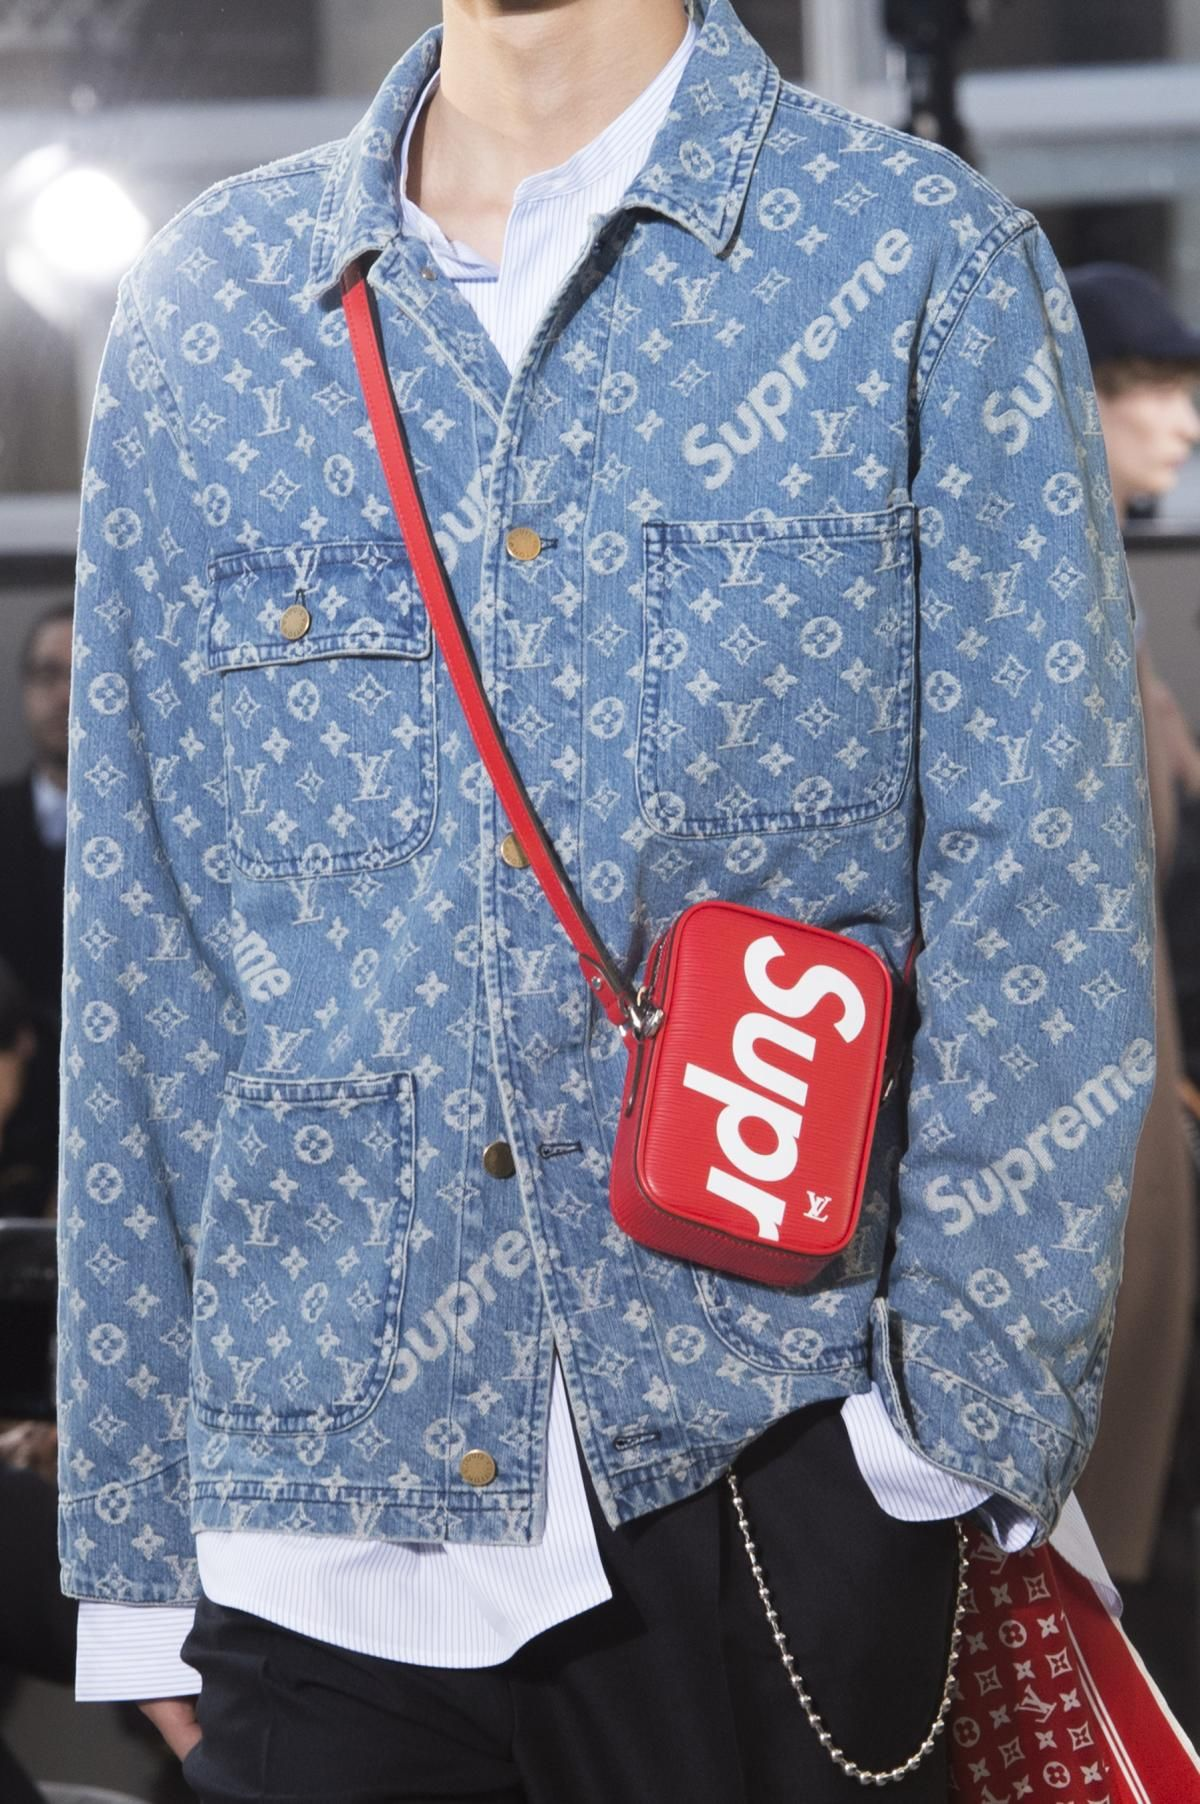 d997c47377 A look from the Louis Vuitton x Supreme collaboration. Photo: Imaxtree.